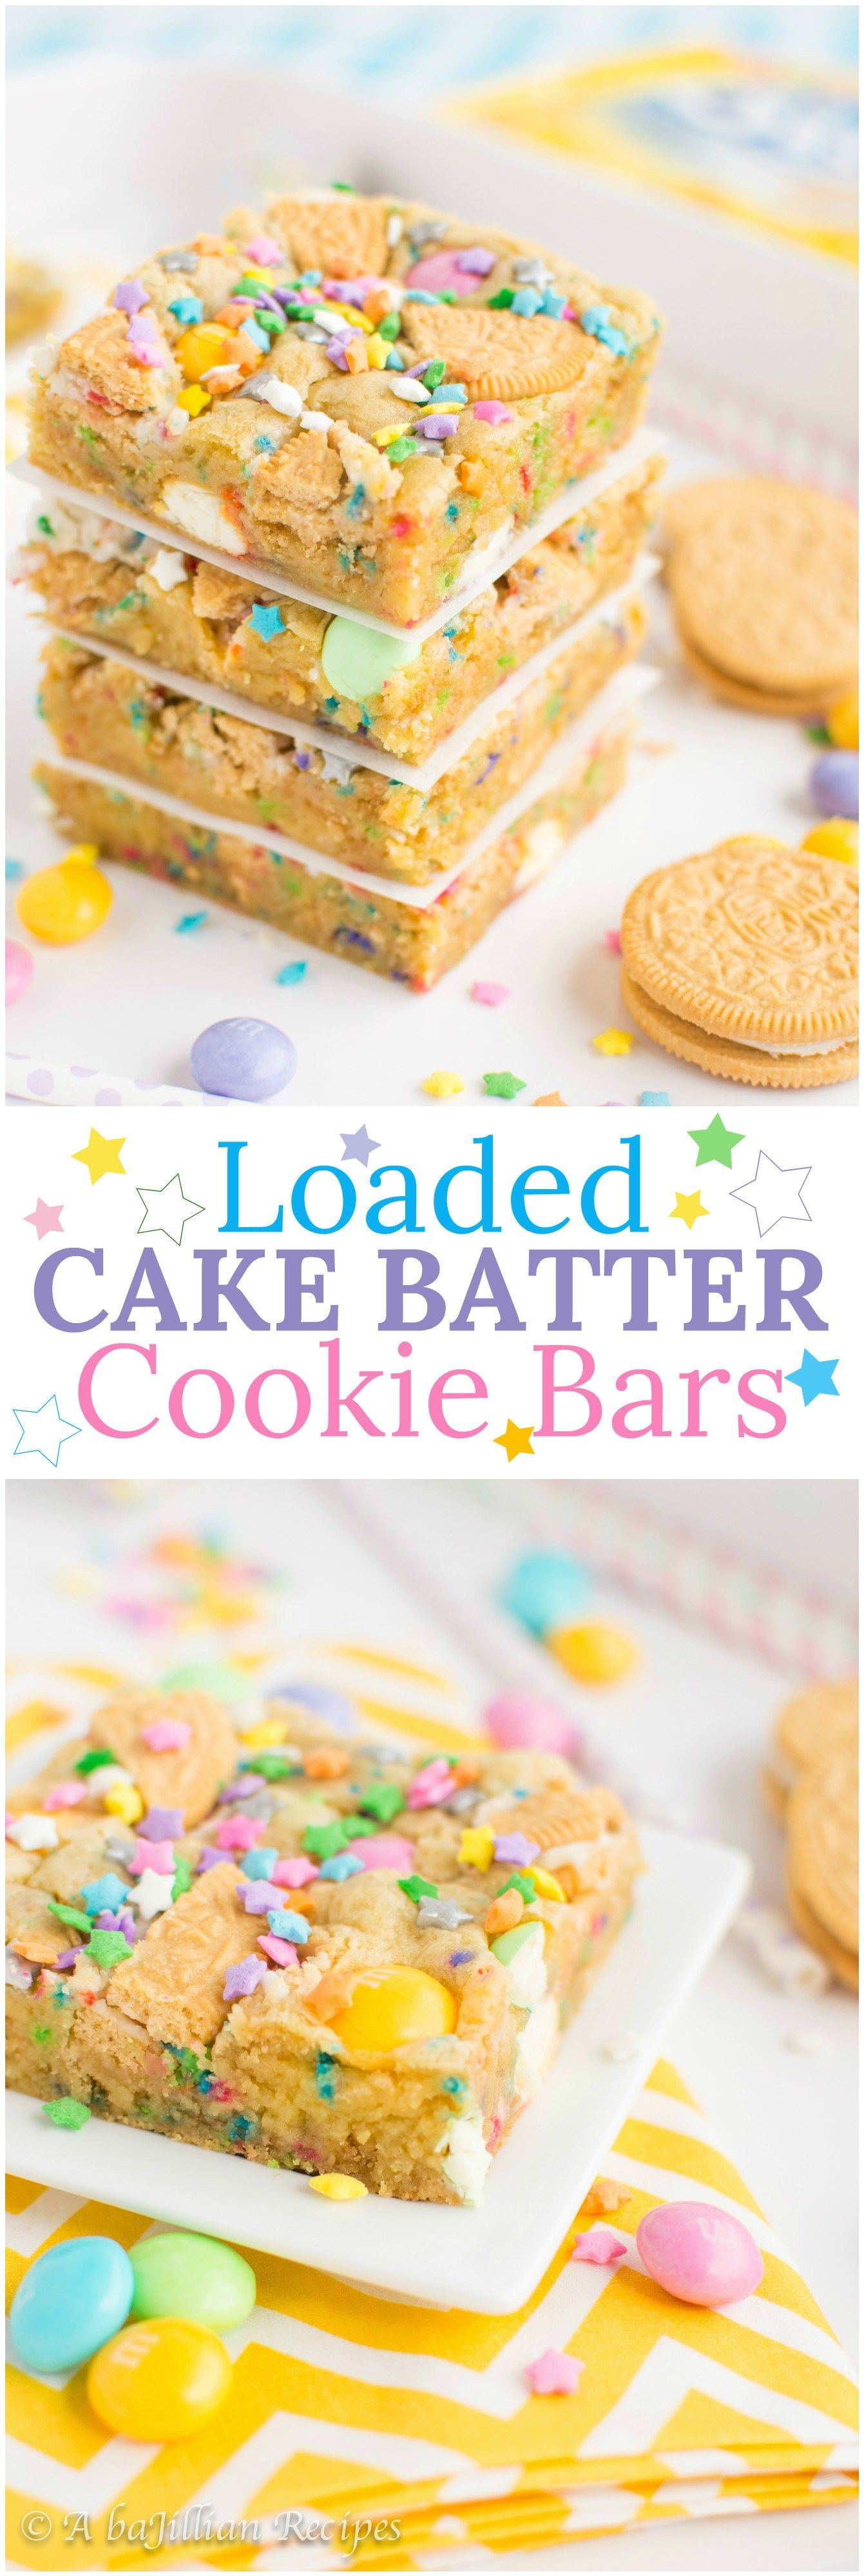 Loaded Cake Batter Cookie Bars Birthday cake oreos Cake batter